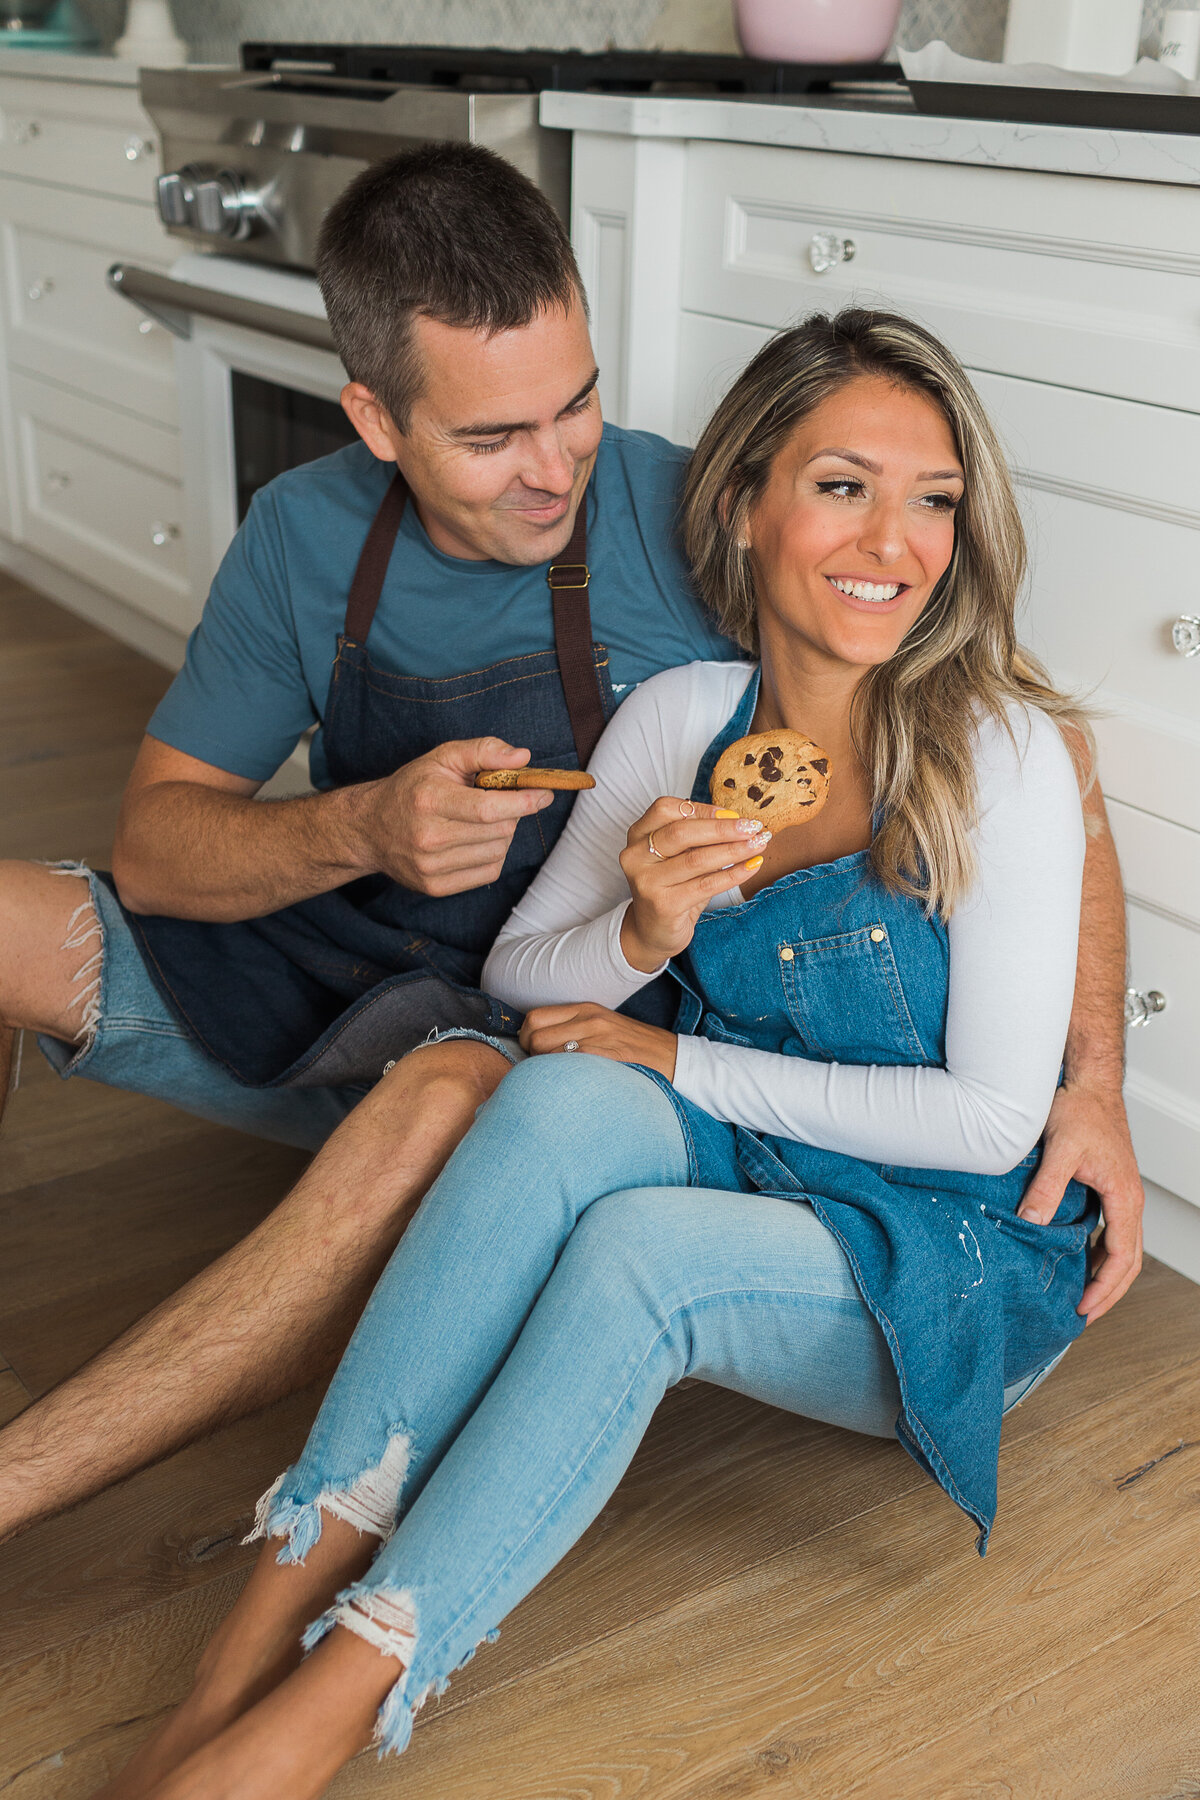 couple sitting on the floor eating chocolate chip cookies